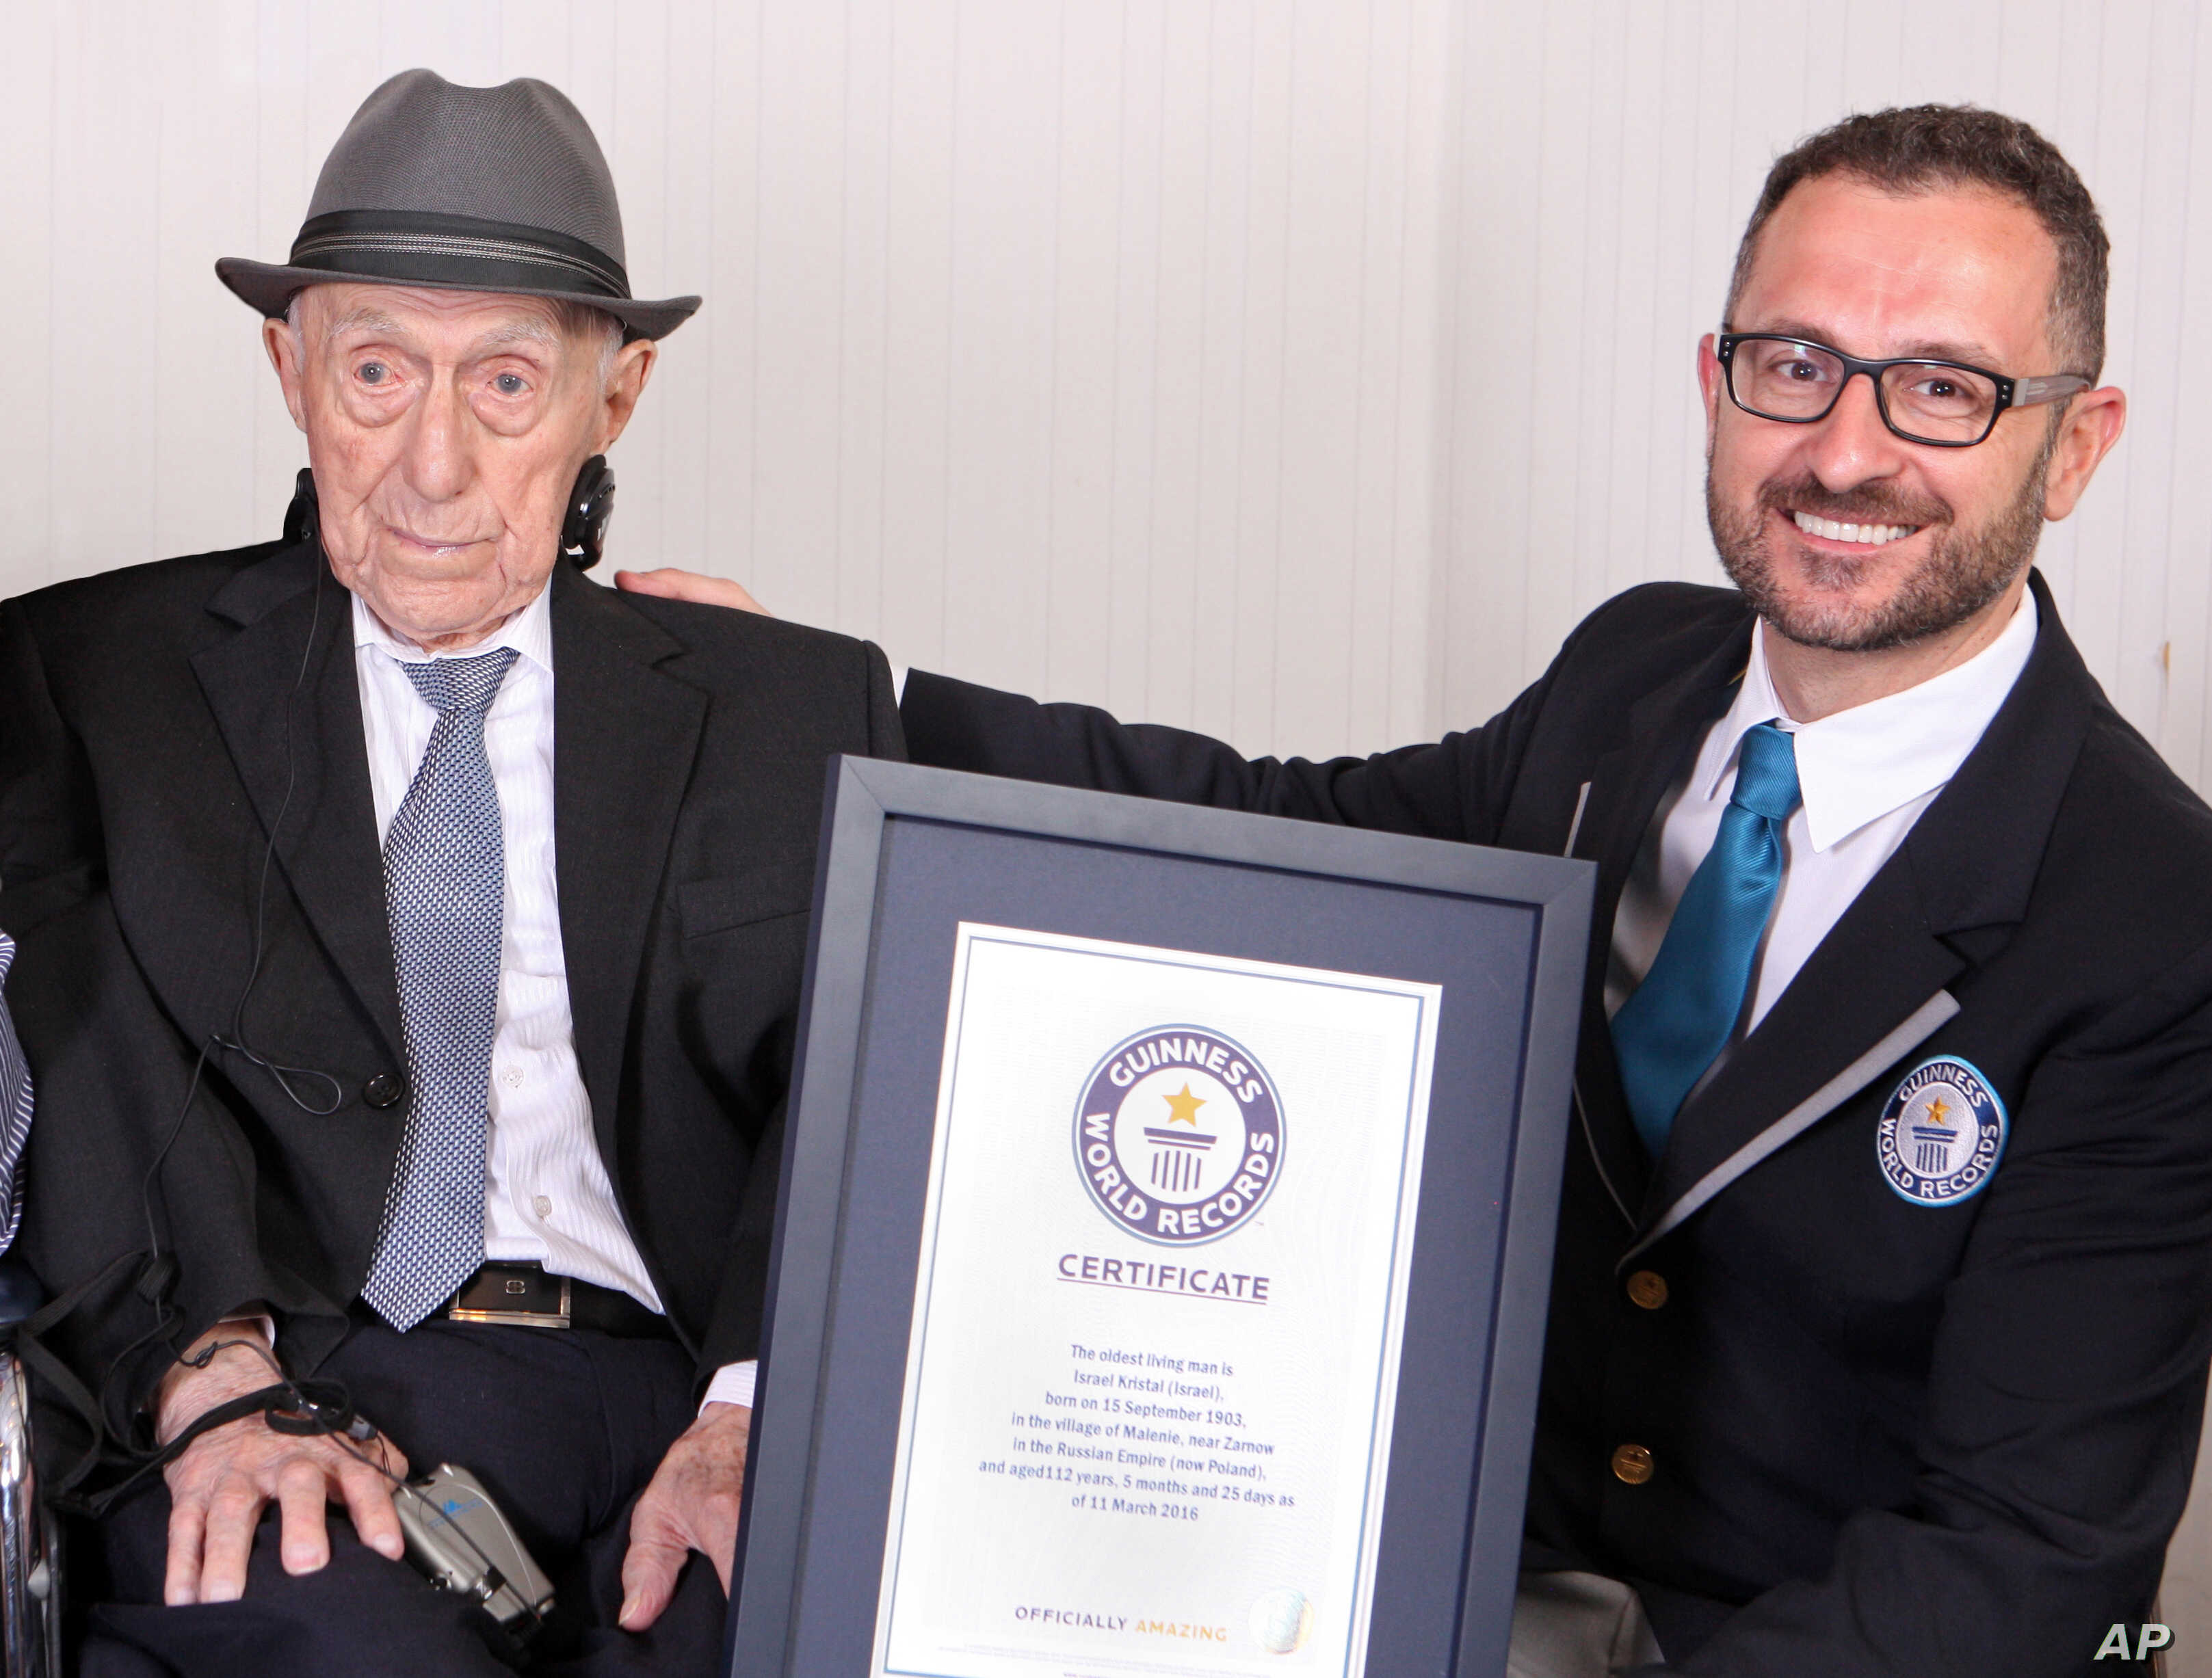 In this photo supplied by Guinness World Records, Marco Frigatti, head of records for Guinness World Records, presents Israel Kristal a certificate for being the oldest living man, in Haifa, Israel, March 11, 2016.